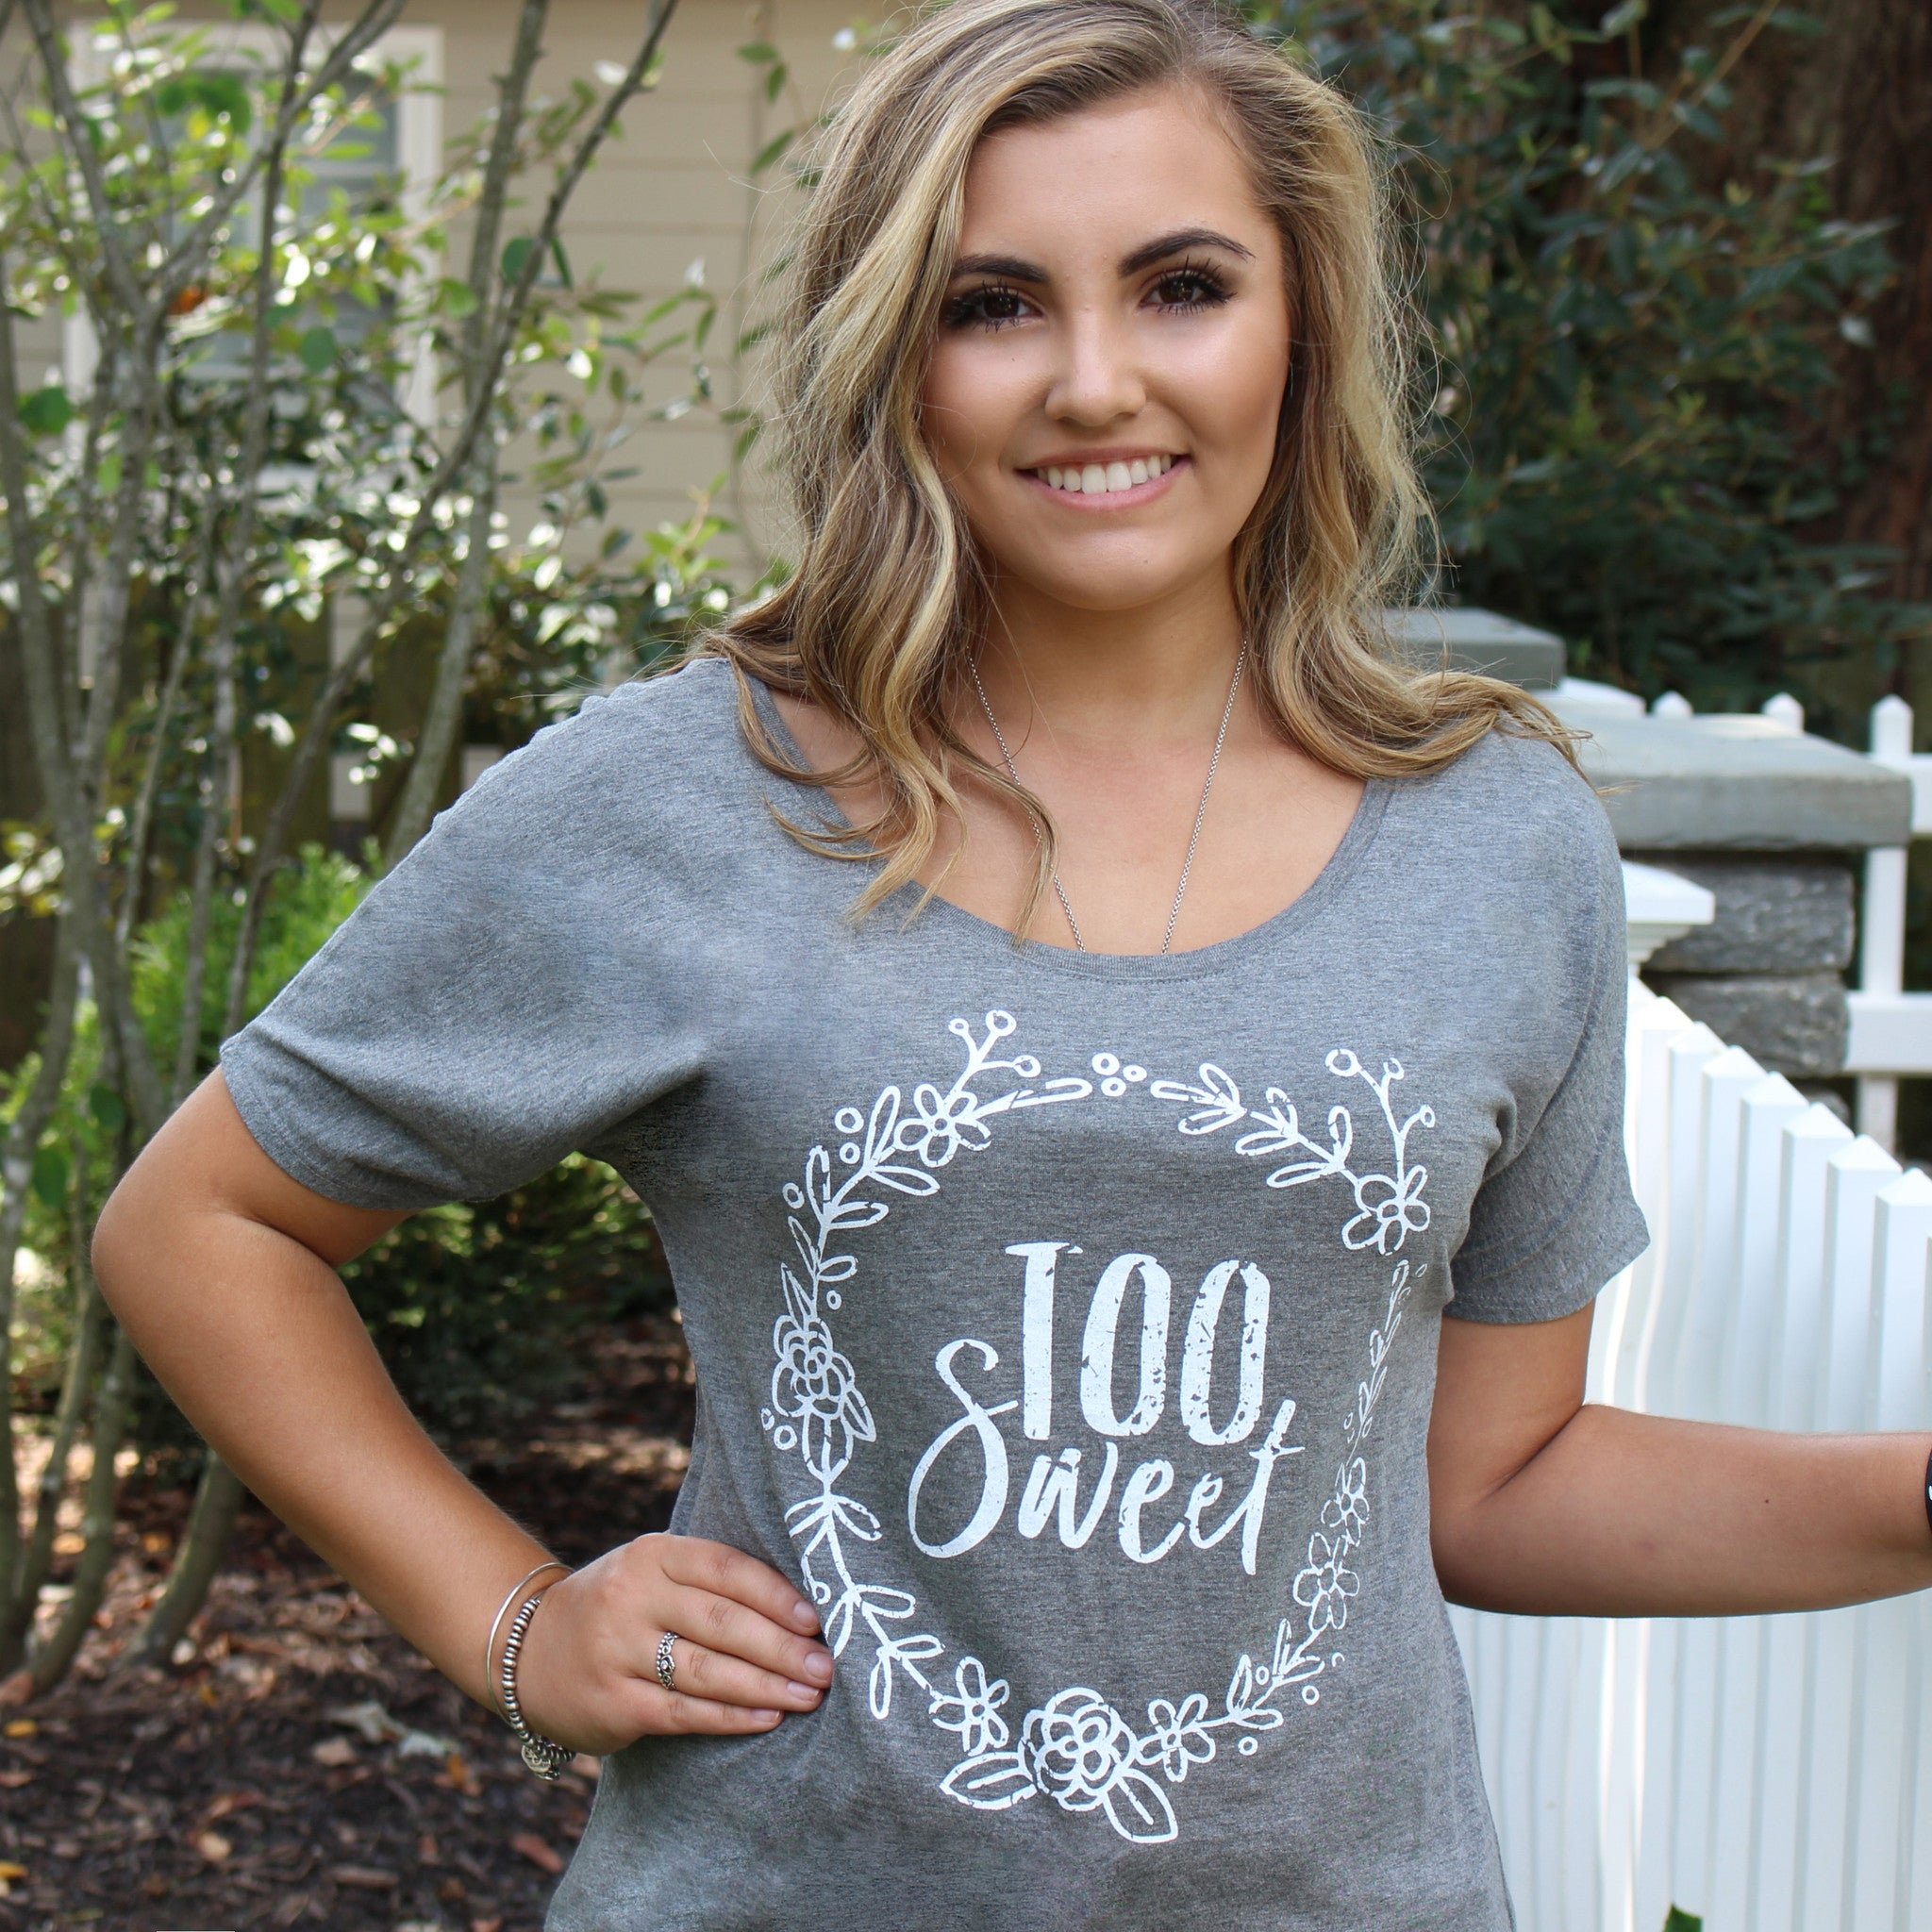 'Too Sweet' Women's Fashion Tee - Sugar Linings Swag - Diabetes Shirts and Clothing